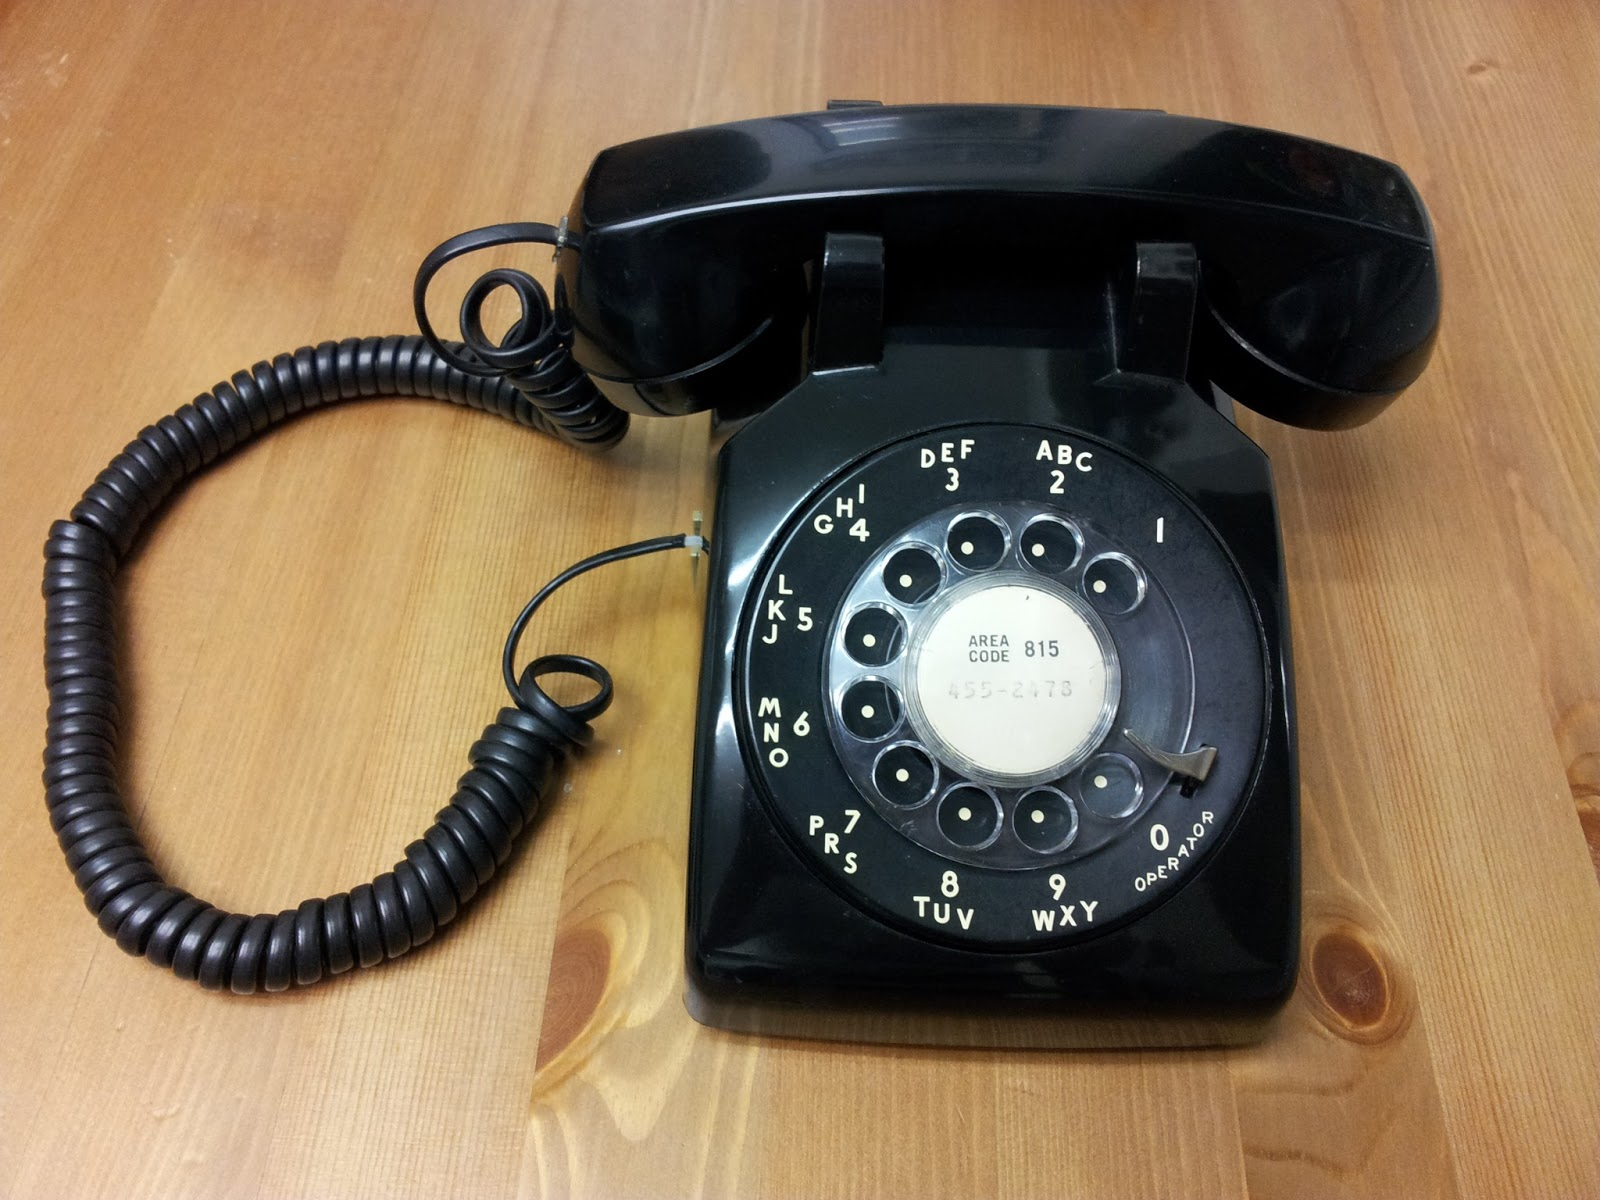 Updating Your Rotary Dial Phone for the Digital Age | DMC ...